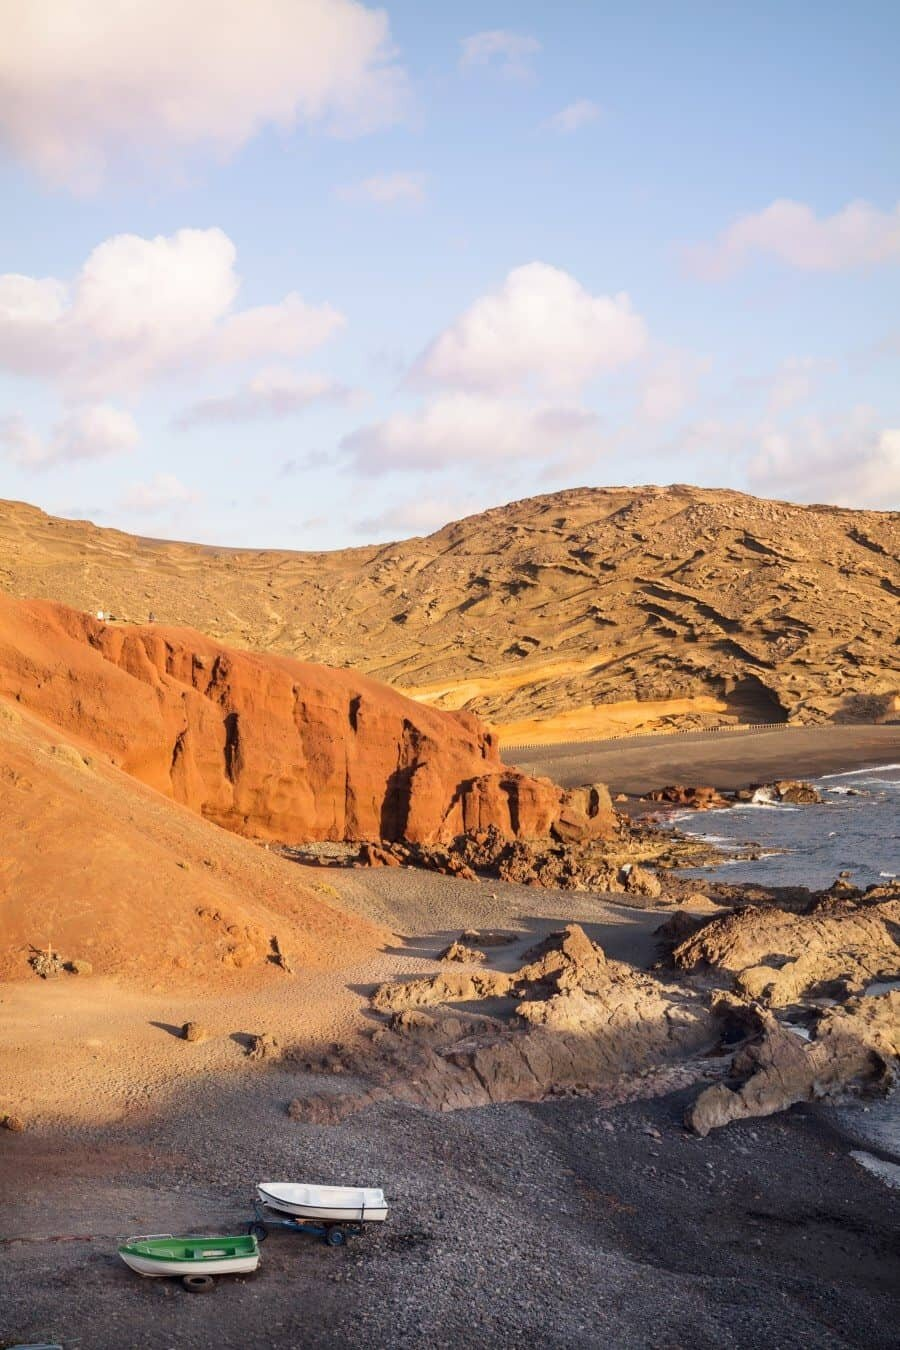 Lanzarote Photography Locations and Travel Guide by The Wandering Lens